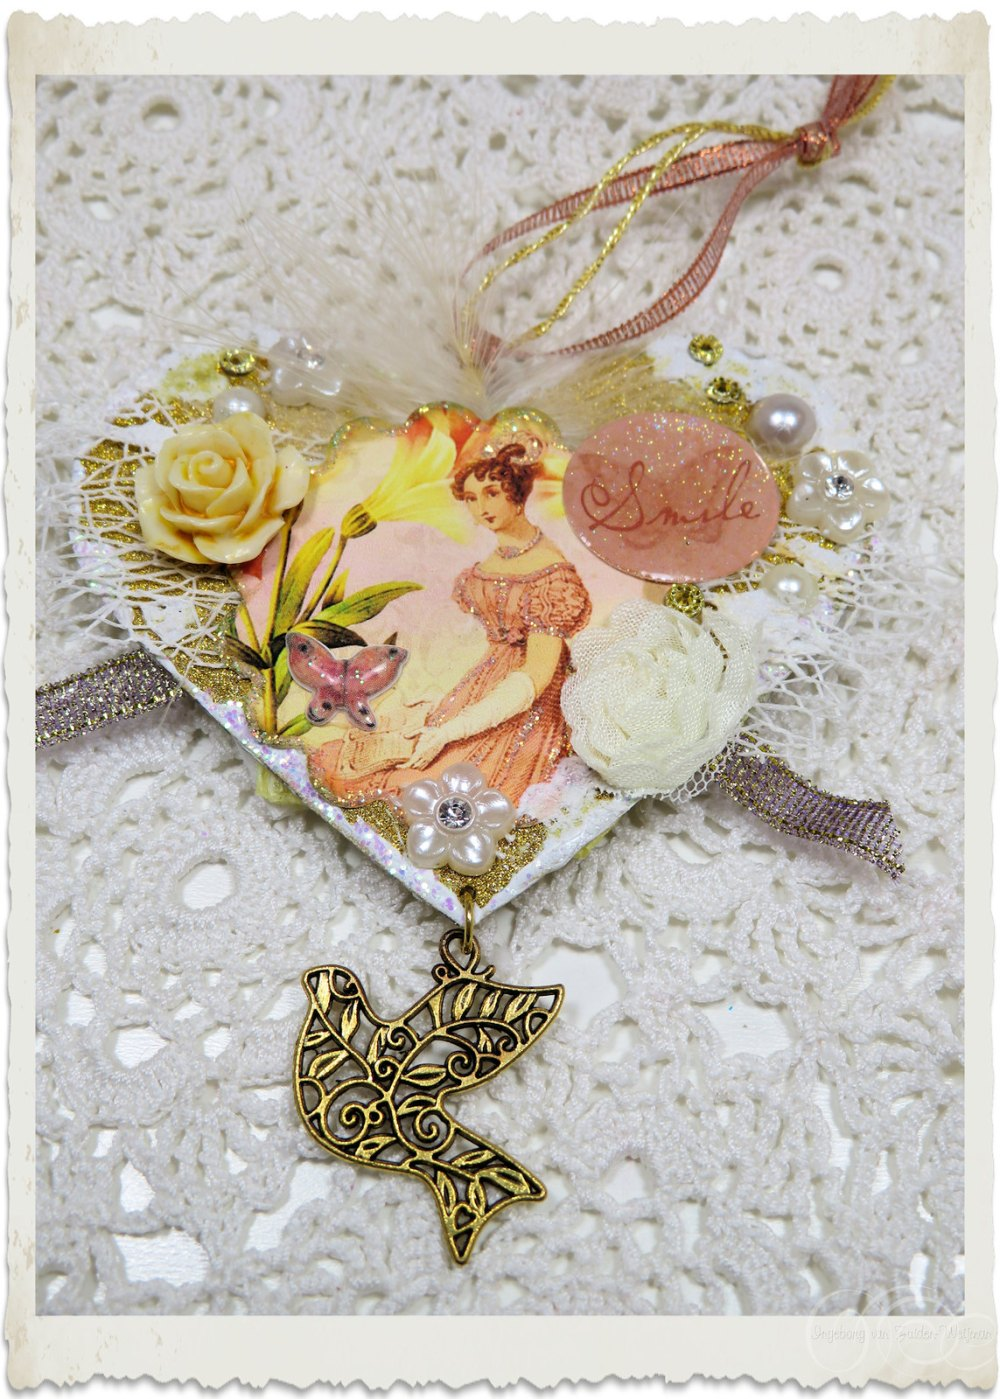 Pretty Regency lady on my handmade mixed media heart